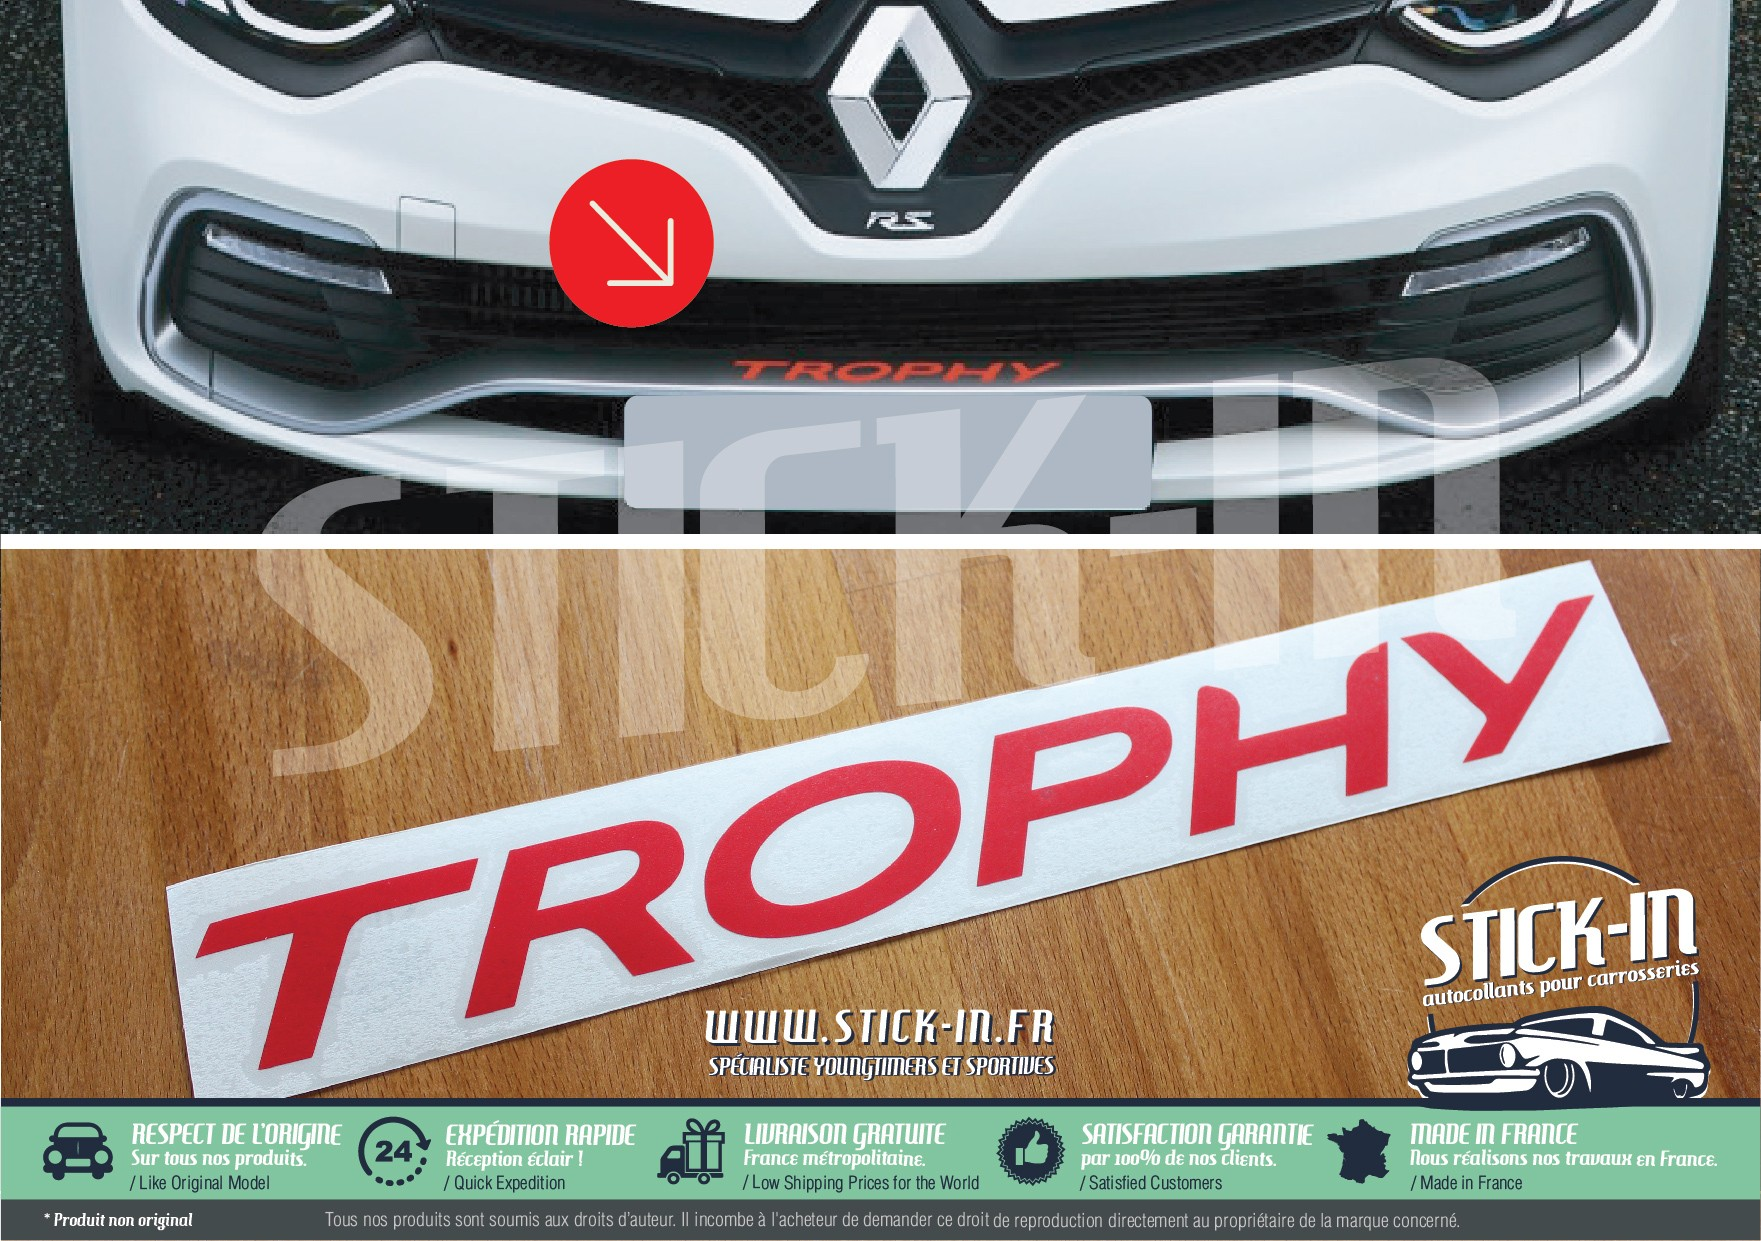 Autocollants Stickers Renault Clio 4 Rs Edc Trophy 220 Parechoc Stick In Www Stick In Fr